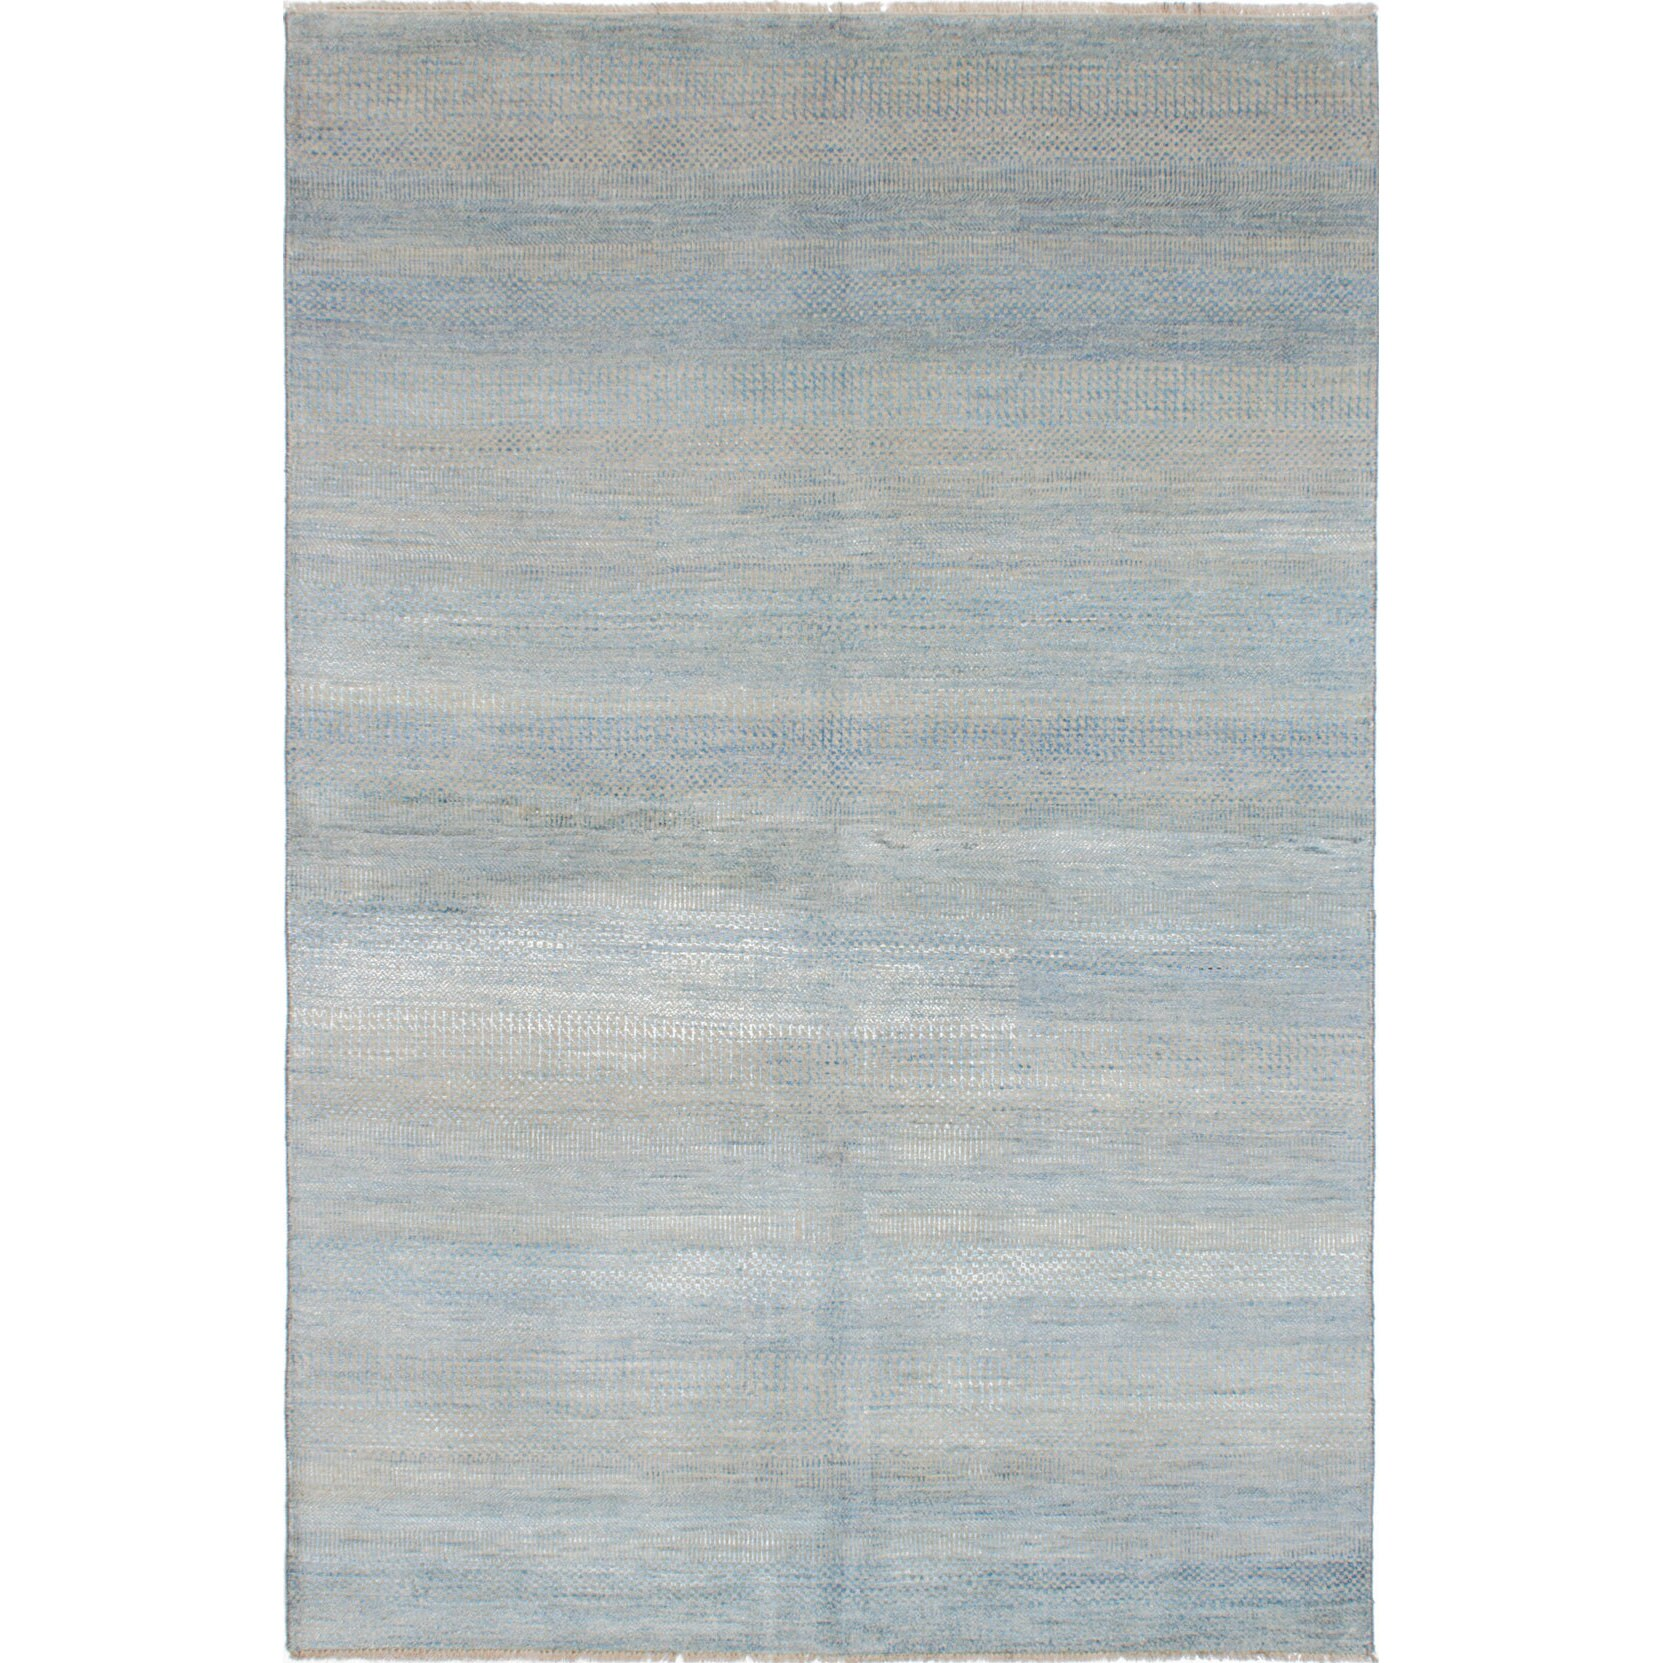 eCarpetGallery Hand-knotted Shevra Blue Wool Blend Area Rug (6'0 x 9'1)